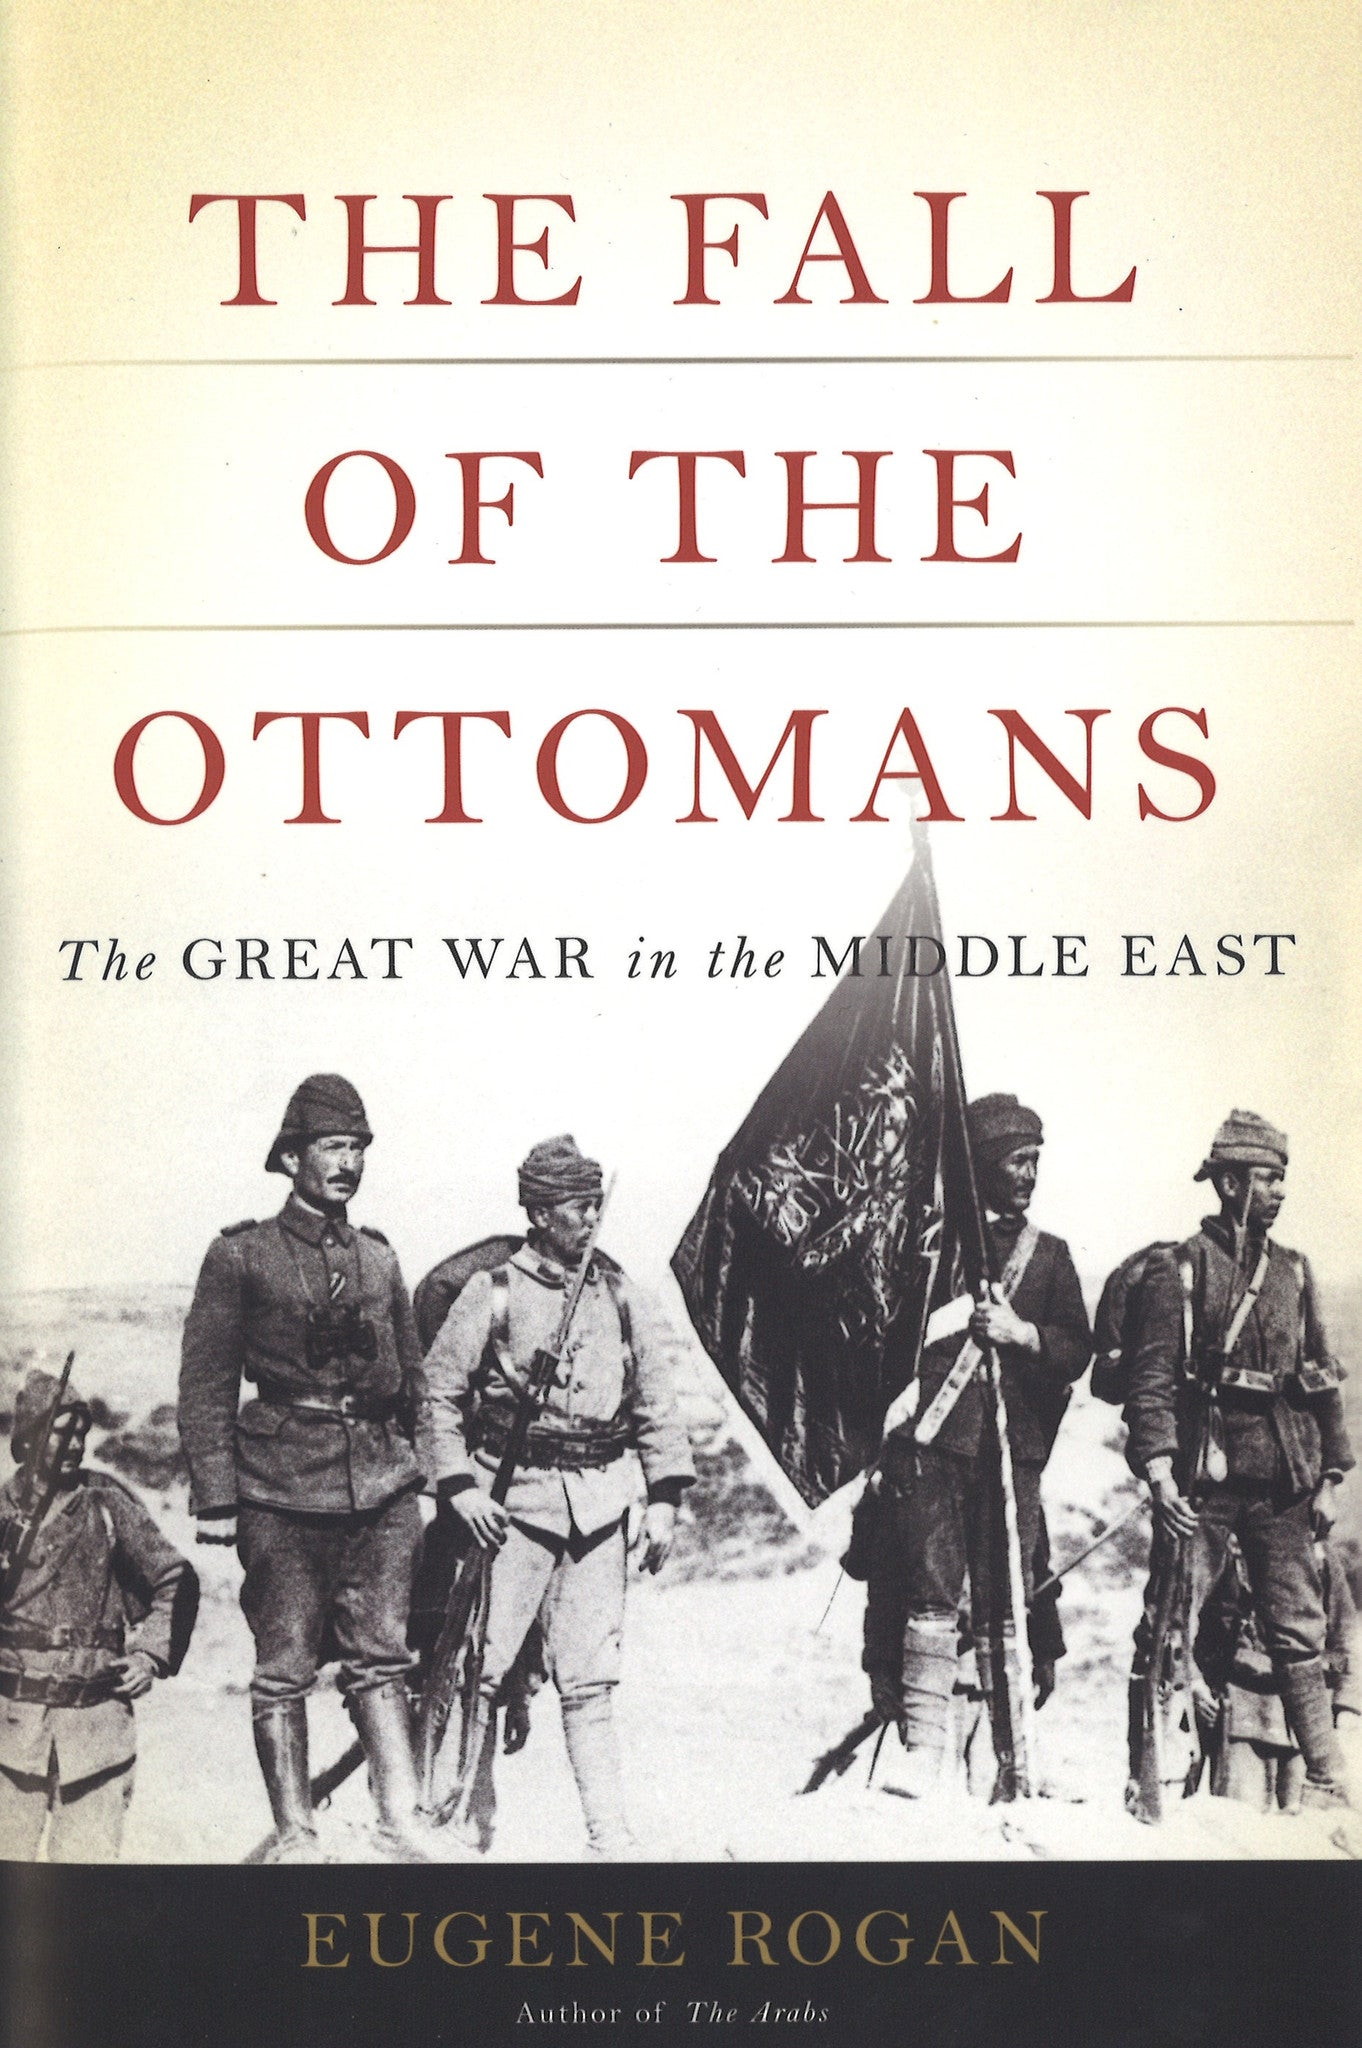 FALL OF THE OTTOMANS: The Great War in the Middle East